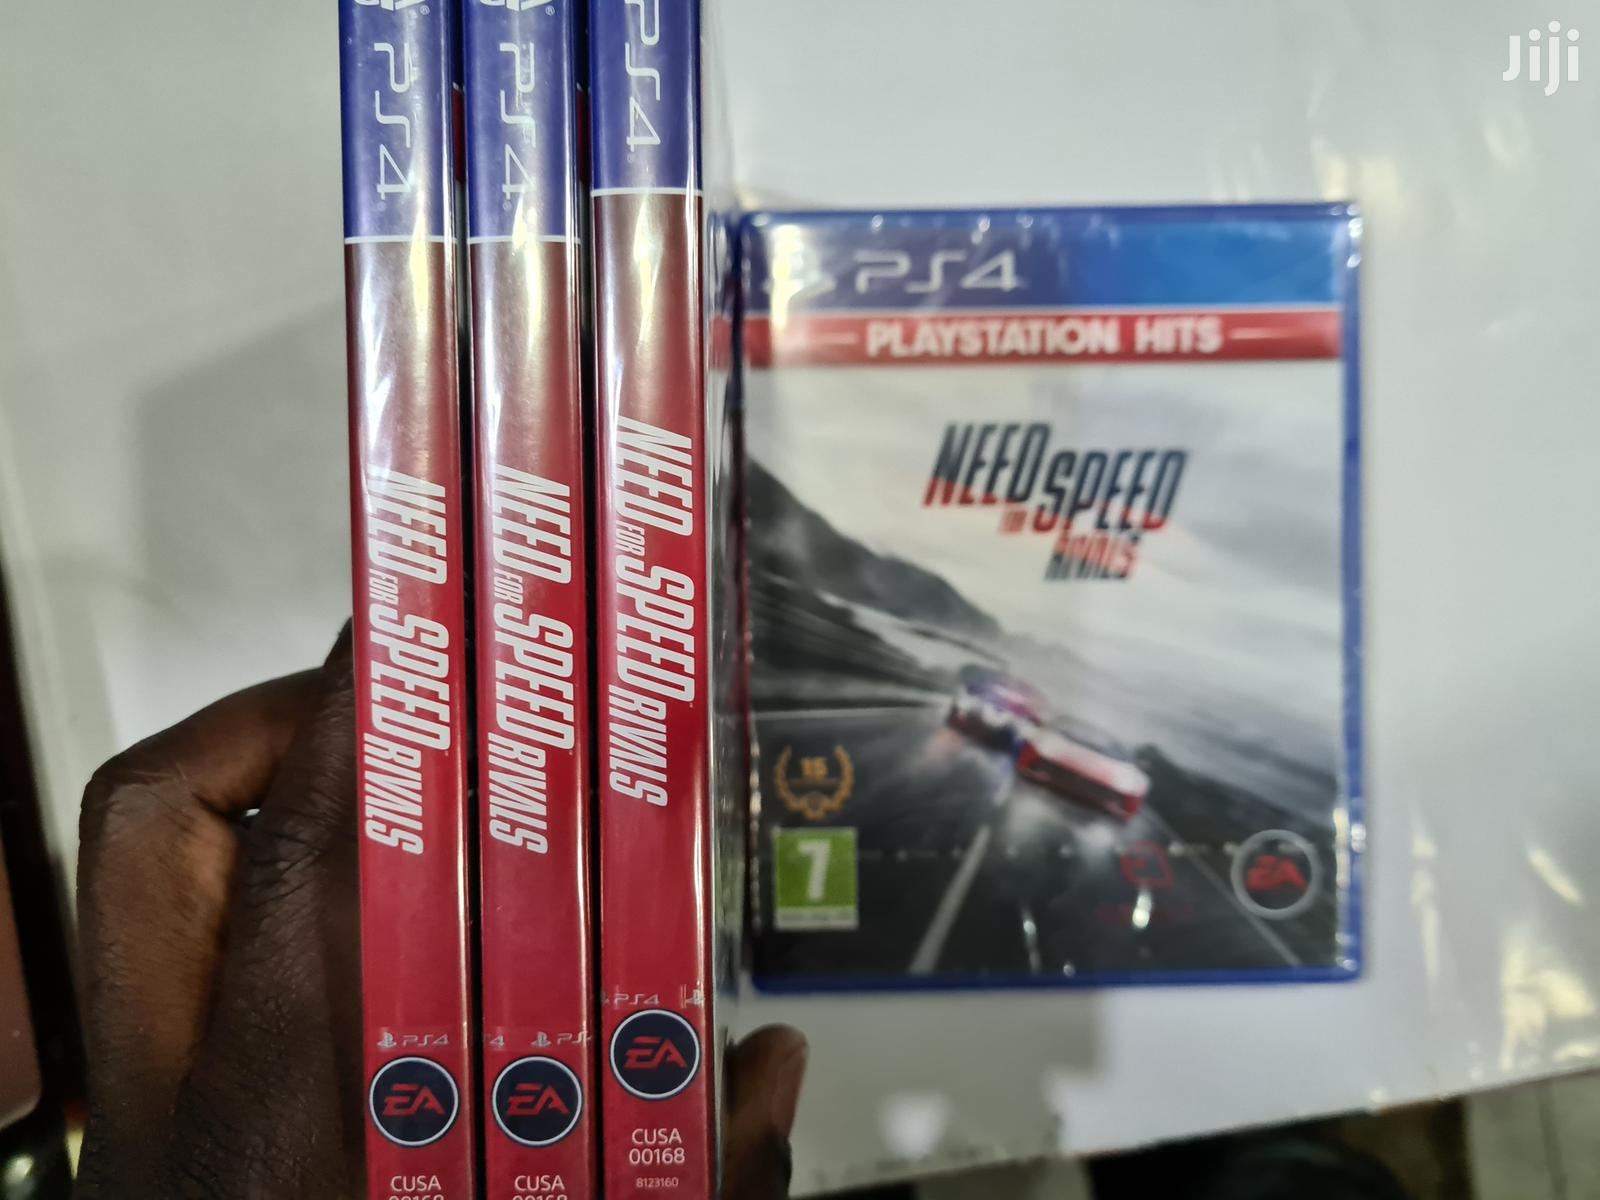 Need For Speed Rivals Nfs Ps4